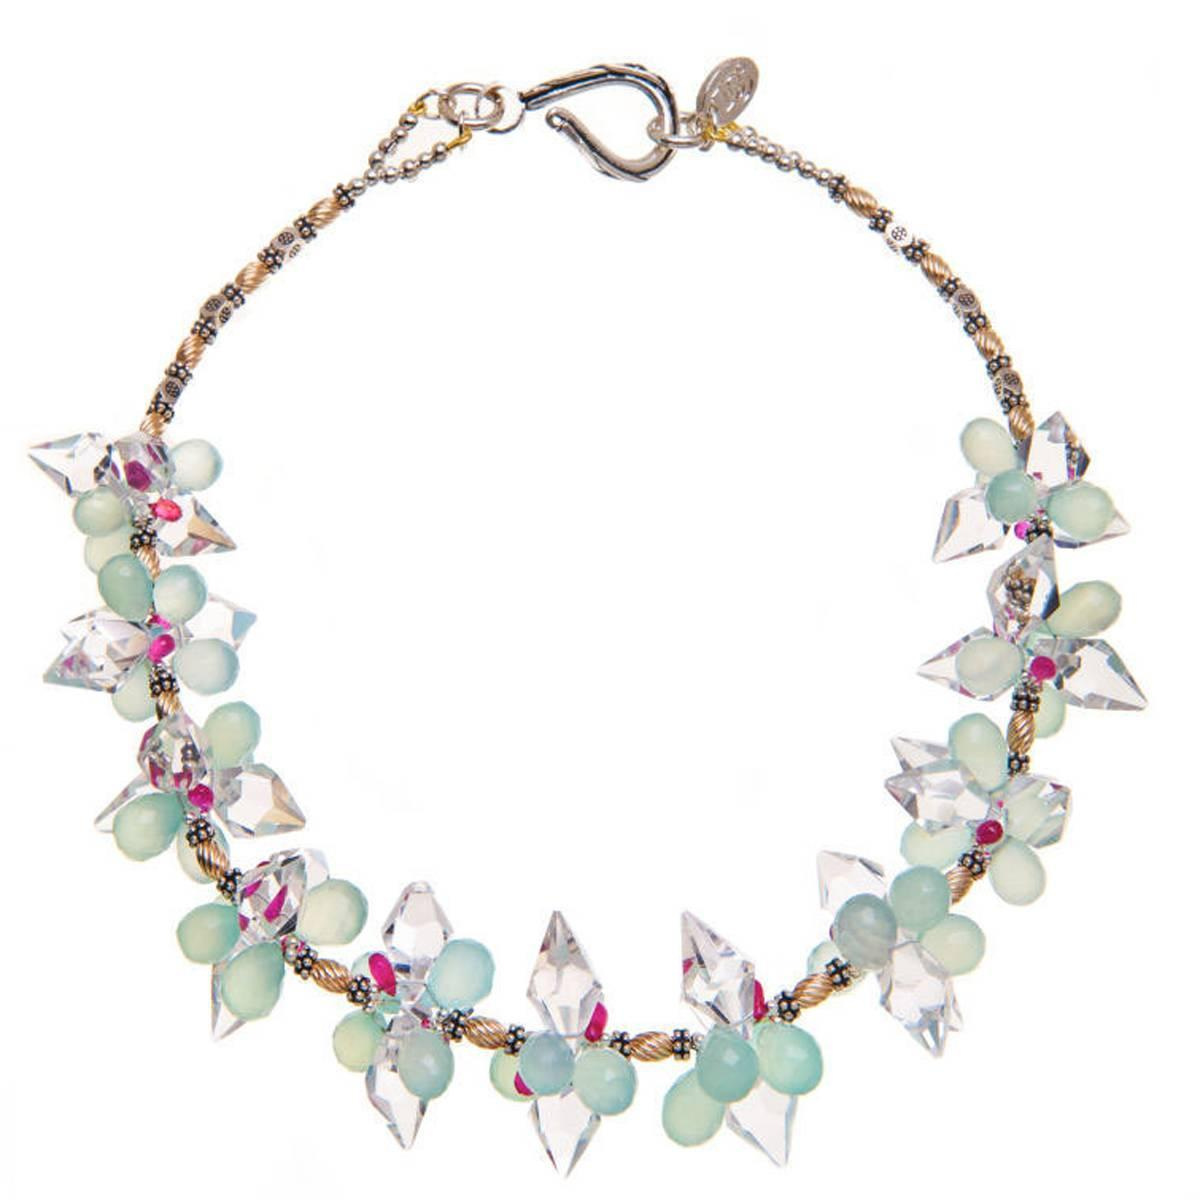 Crystal Ruby Aqua Chalcedony Silver Gold Necklace For Sale